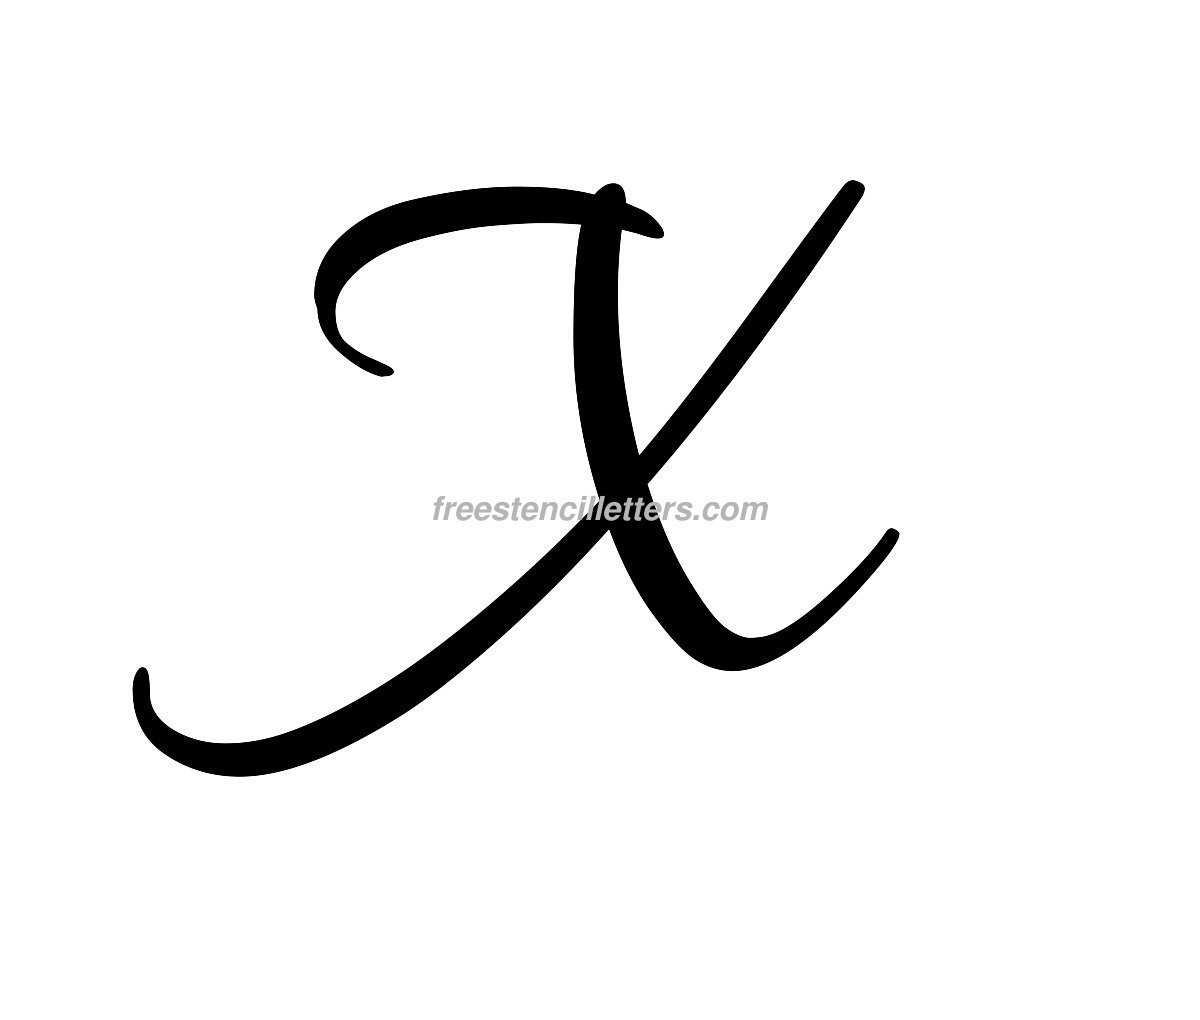 Cursive letters archives free stencil letters print x letter stencil biocorpaavc Image collections